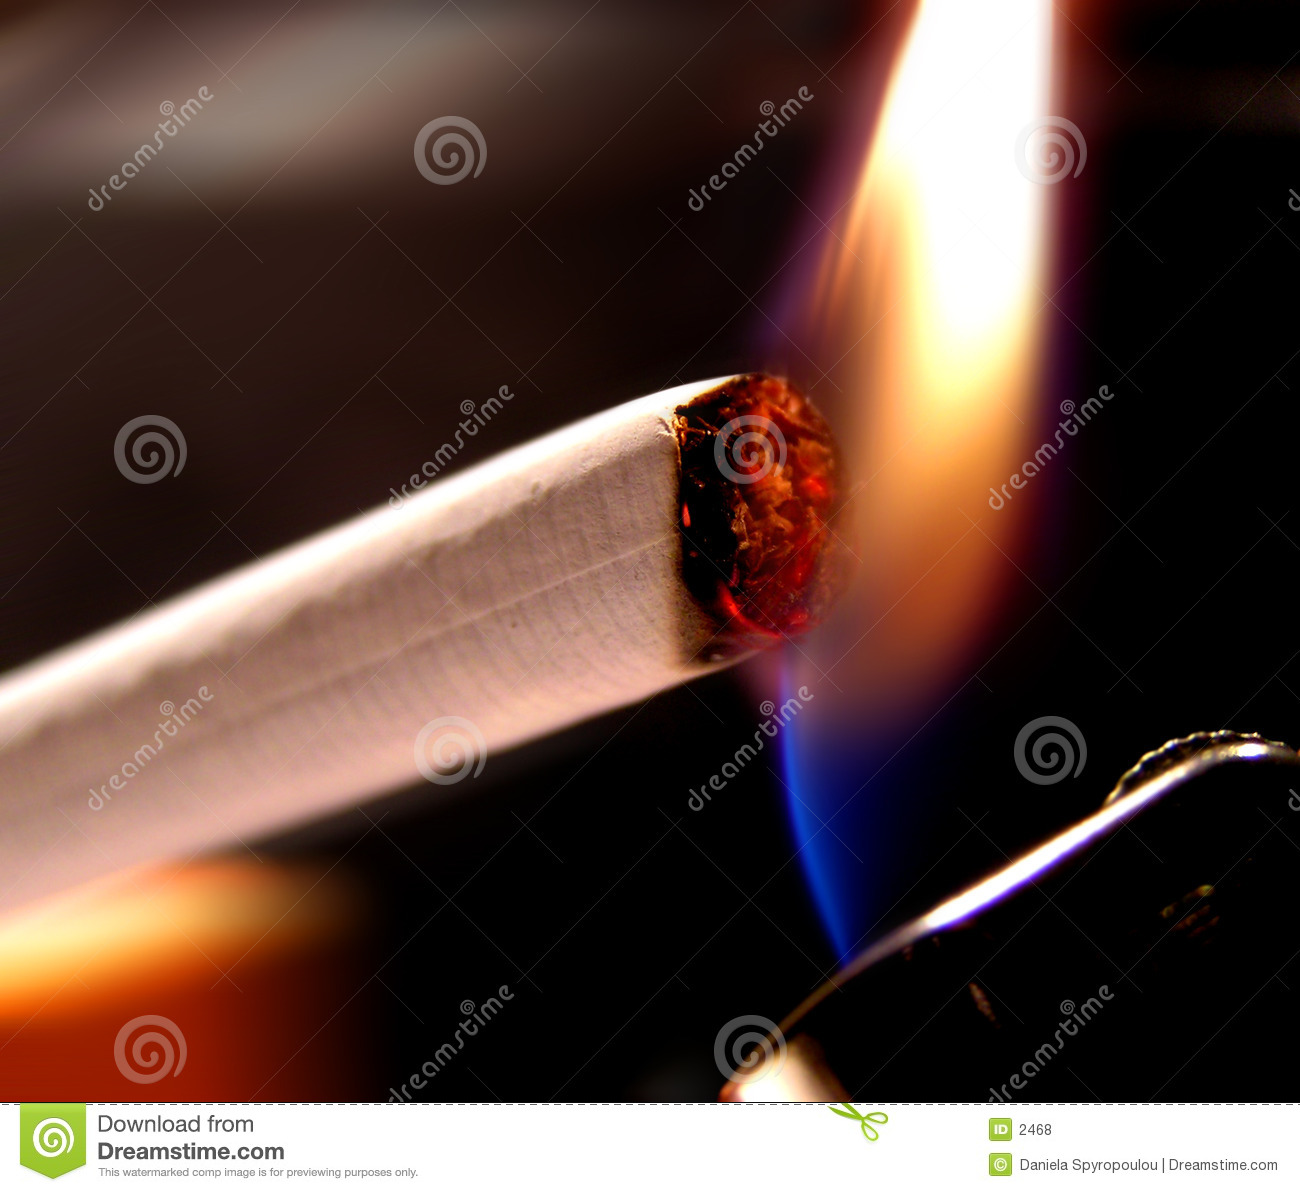 Cigarettlighting